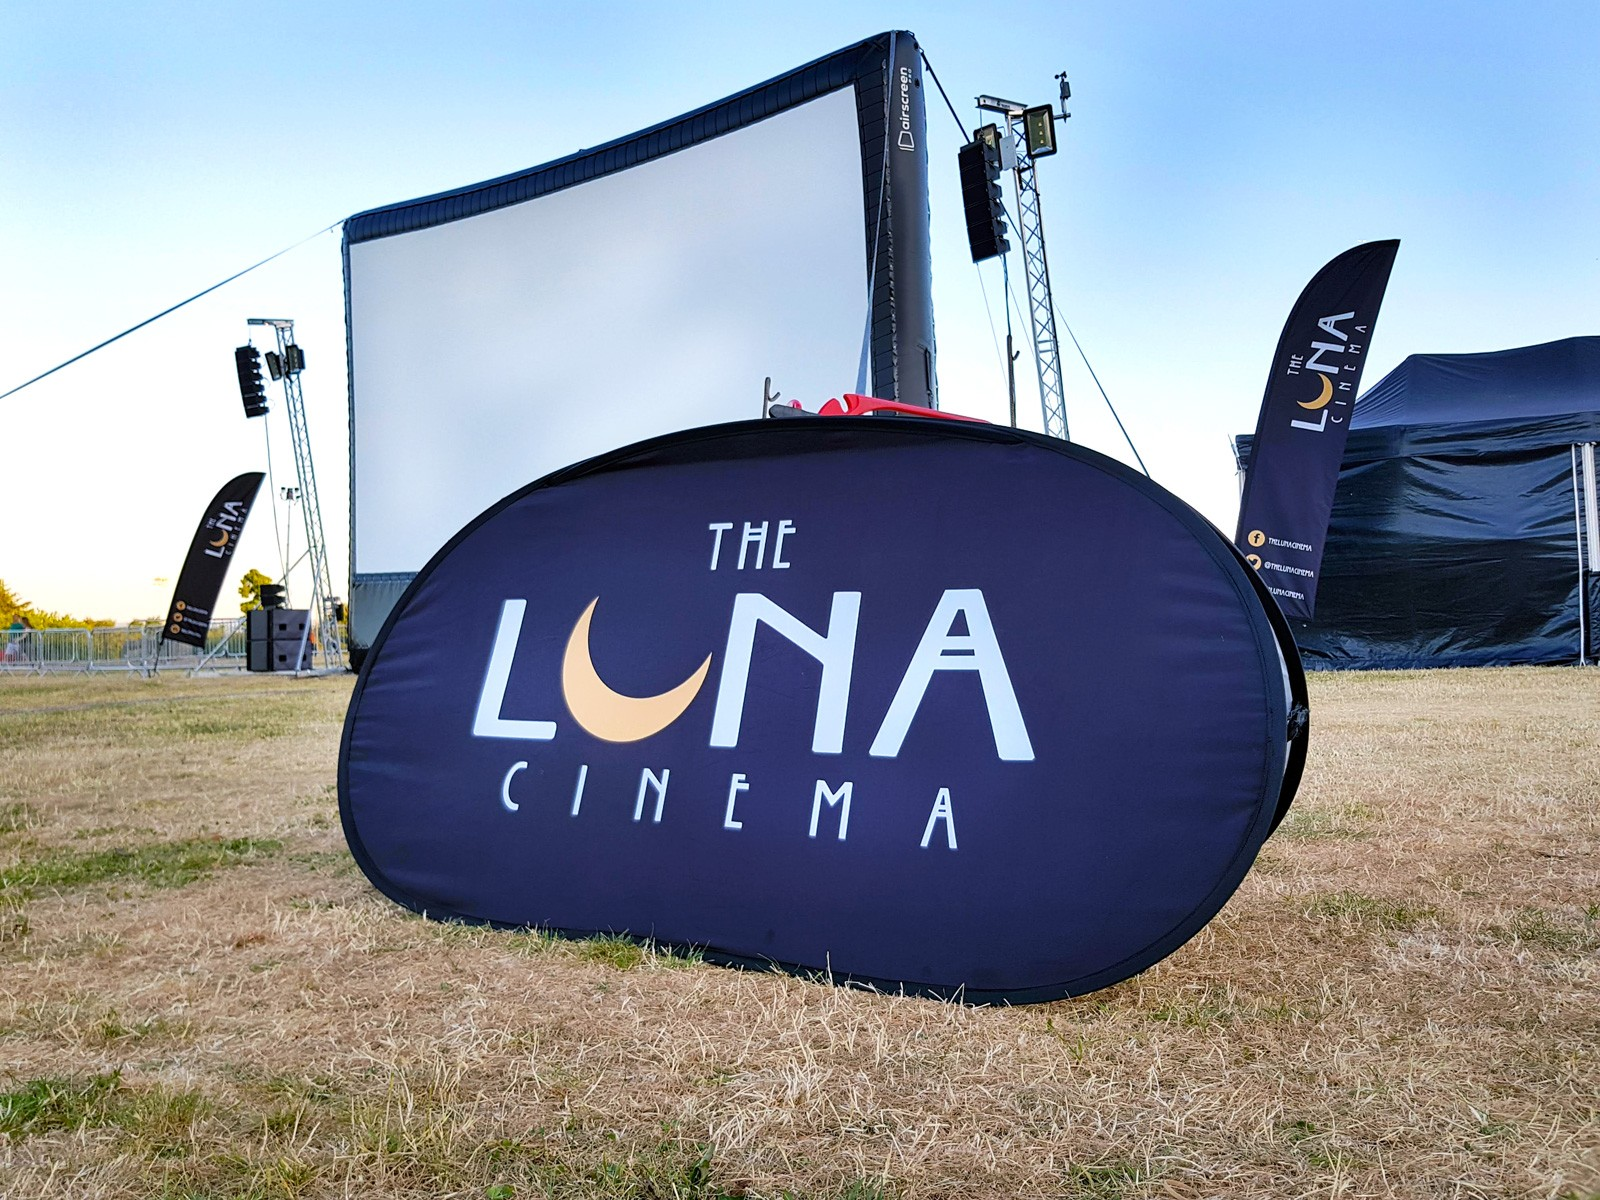 Luna-Cinema-Crystal-Palace-London-United-Kingdom-Sign-and-Inflatable-Screen-Patrick-von-Sychowski